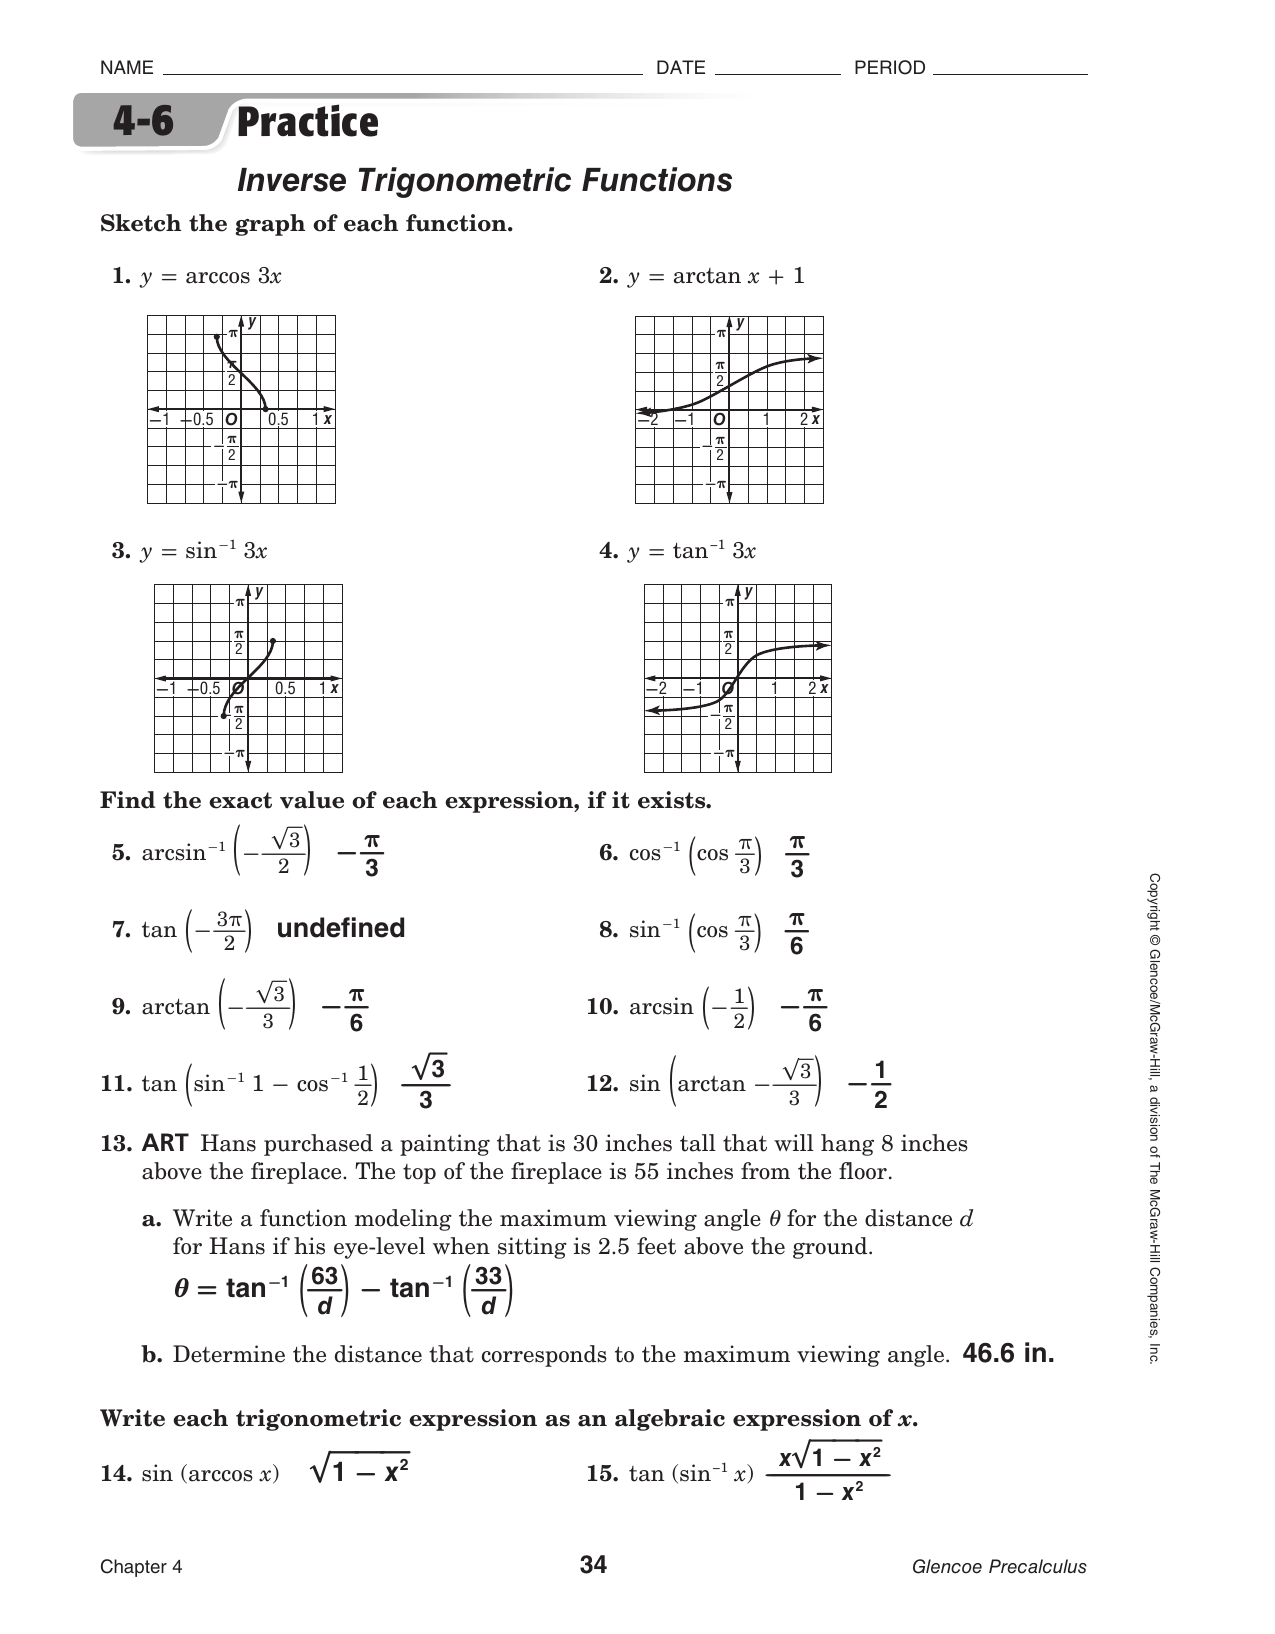 Glencoe Precalculus Worksheet Answers